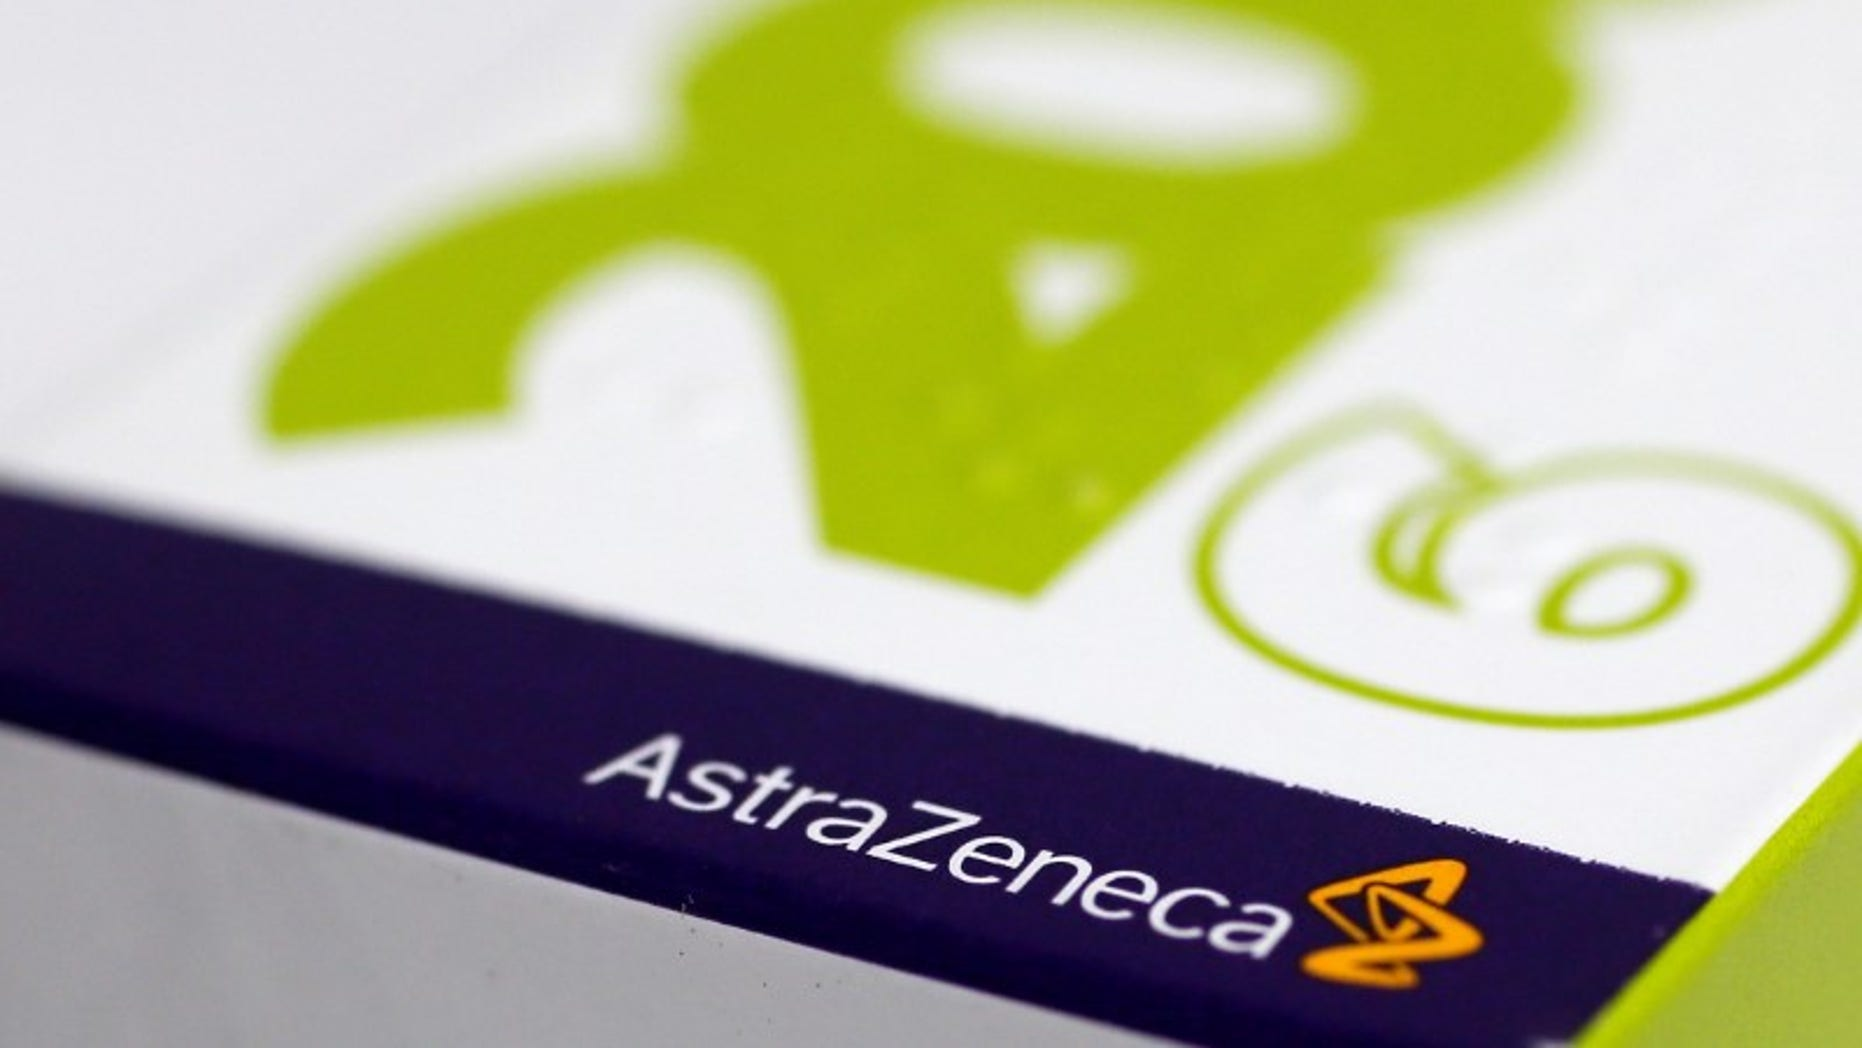 FILE PHOTO: The logo of AstraZeneca is seen on a medication package at a pharmacy in London